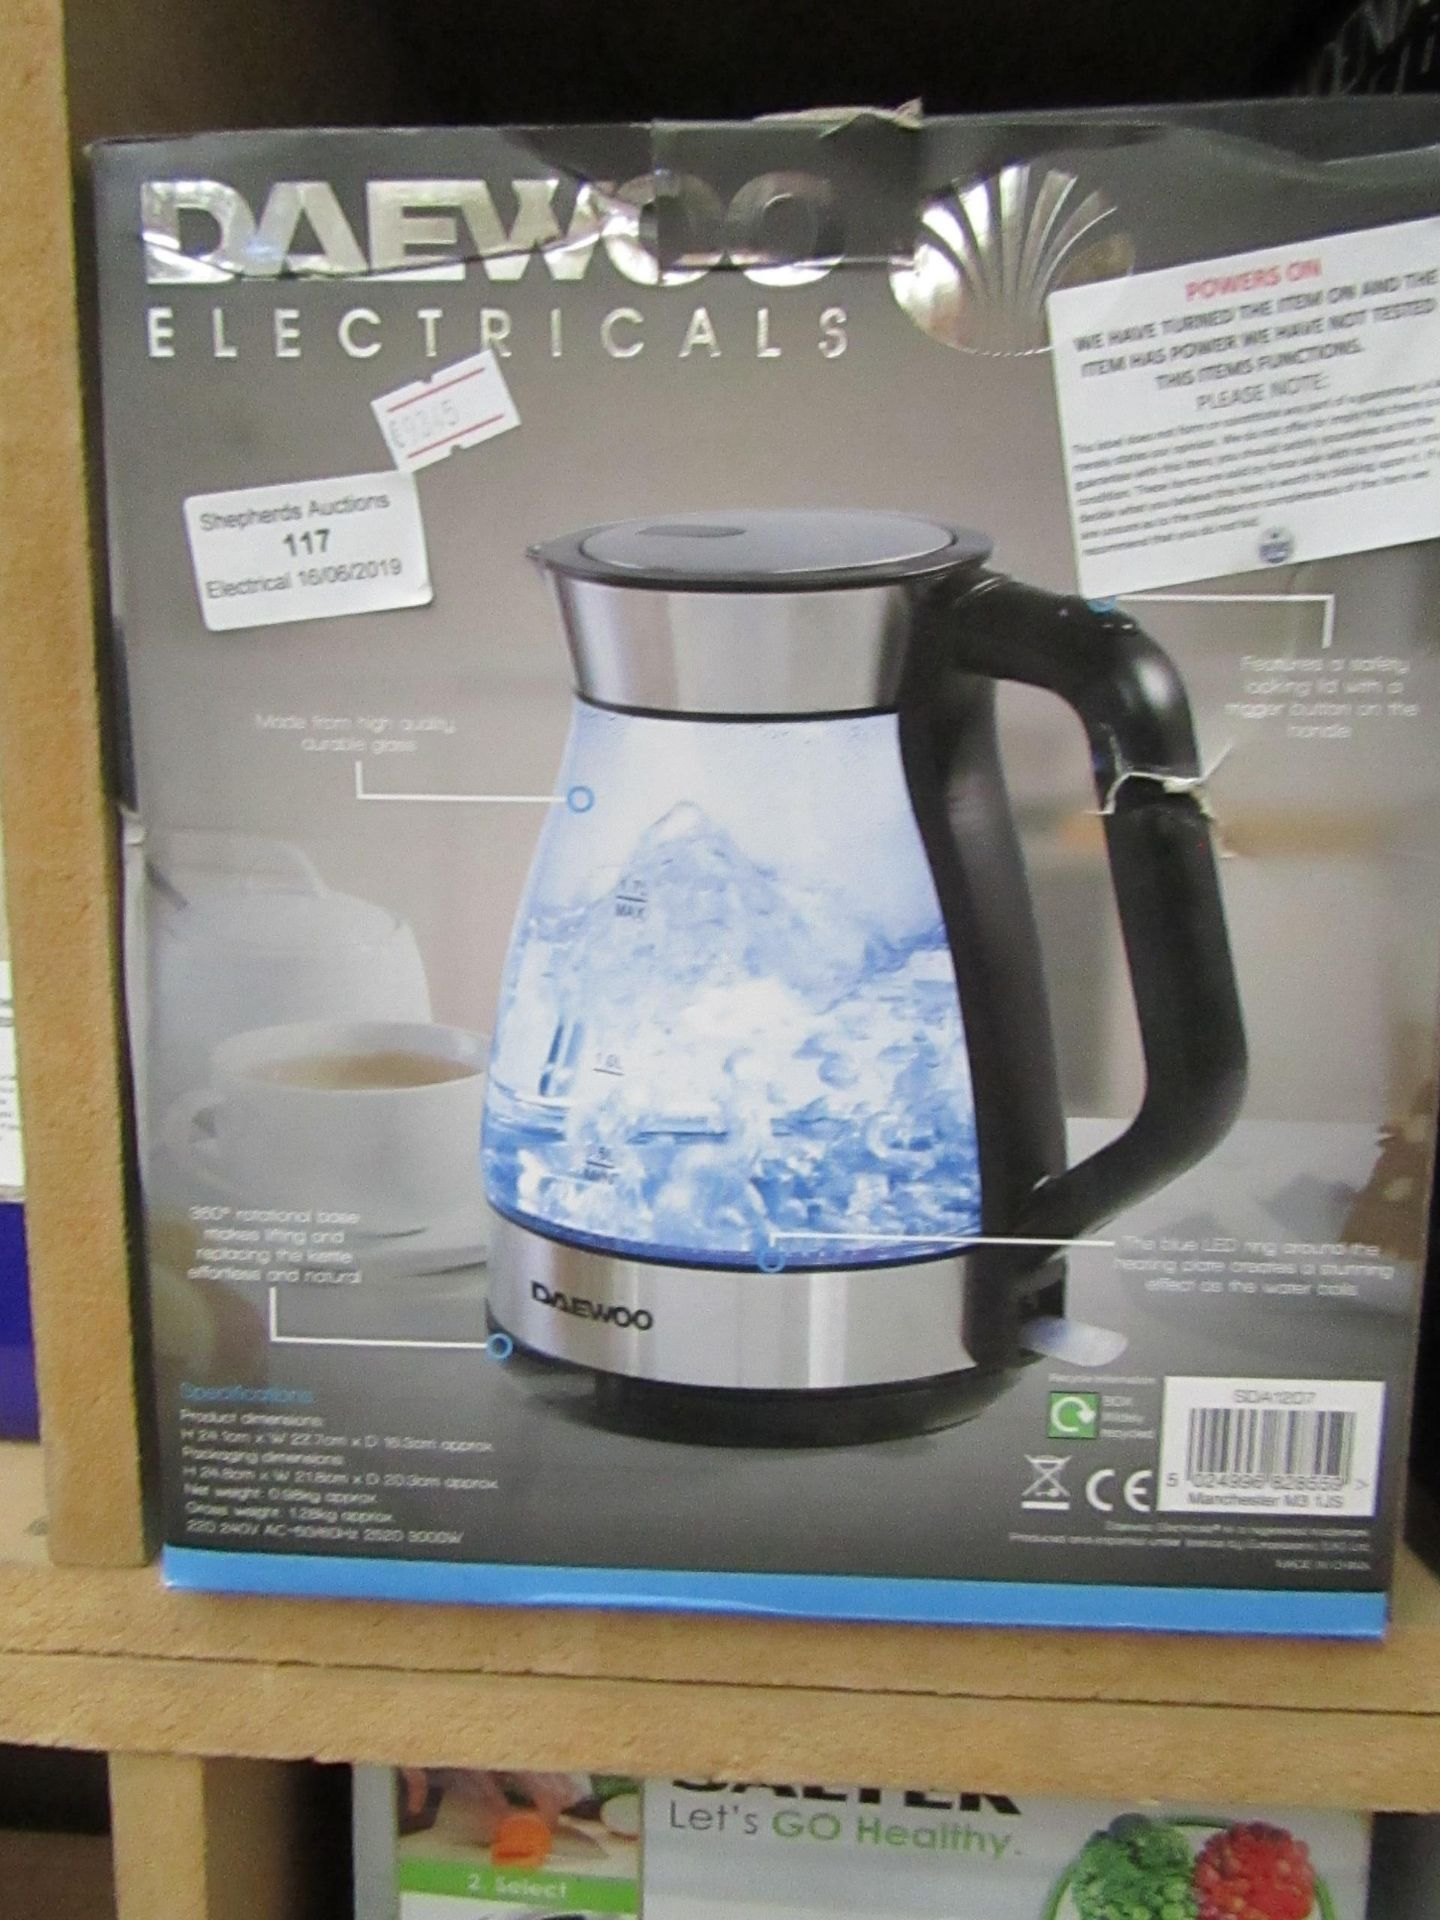 Lot 117 - Daewoo Electricals aqua kettle, tested working and boxed.